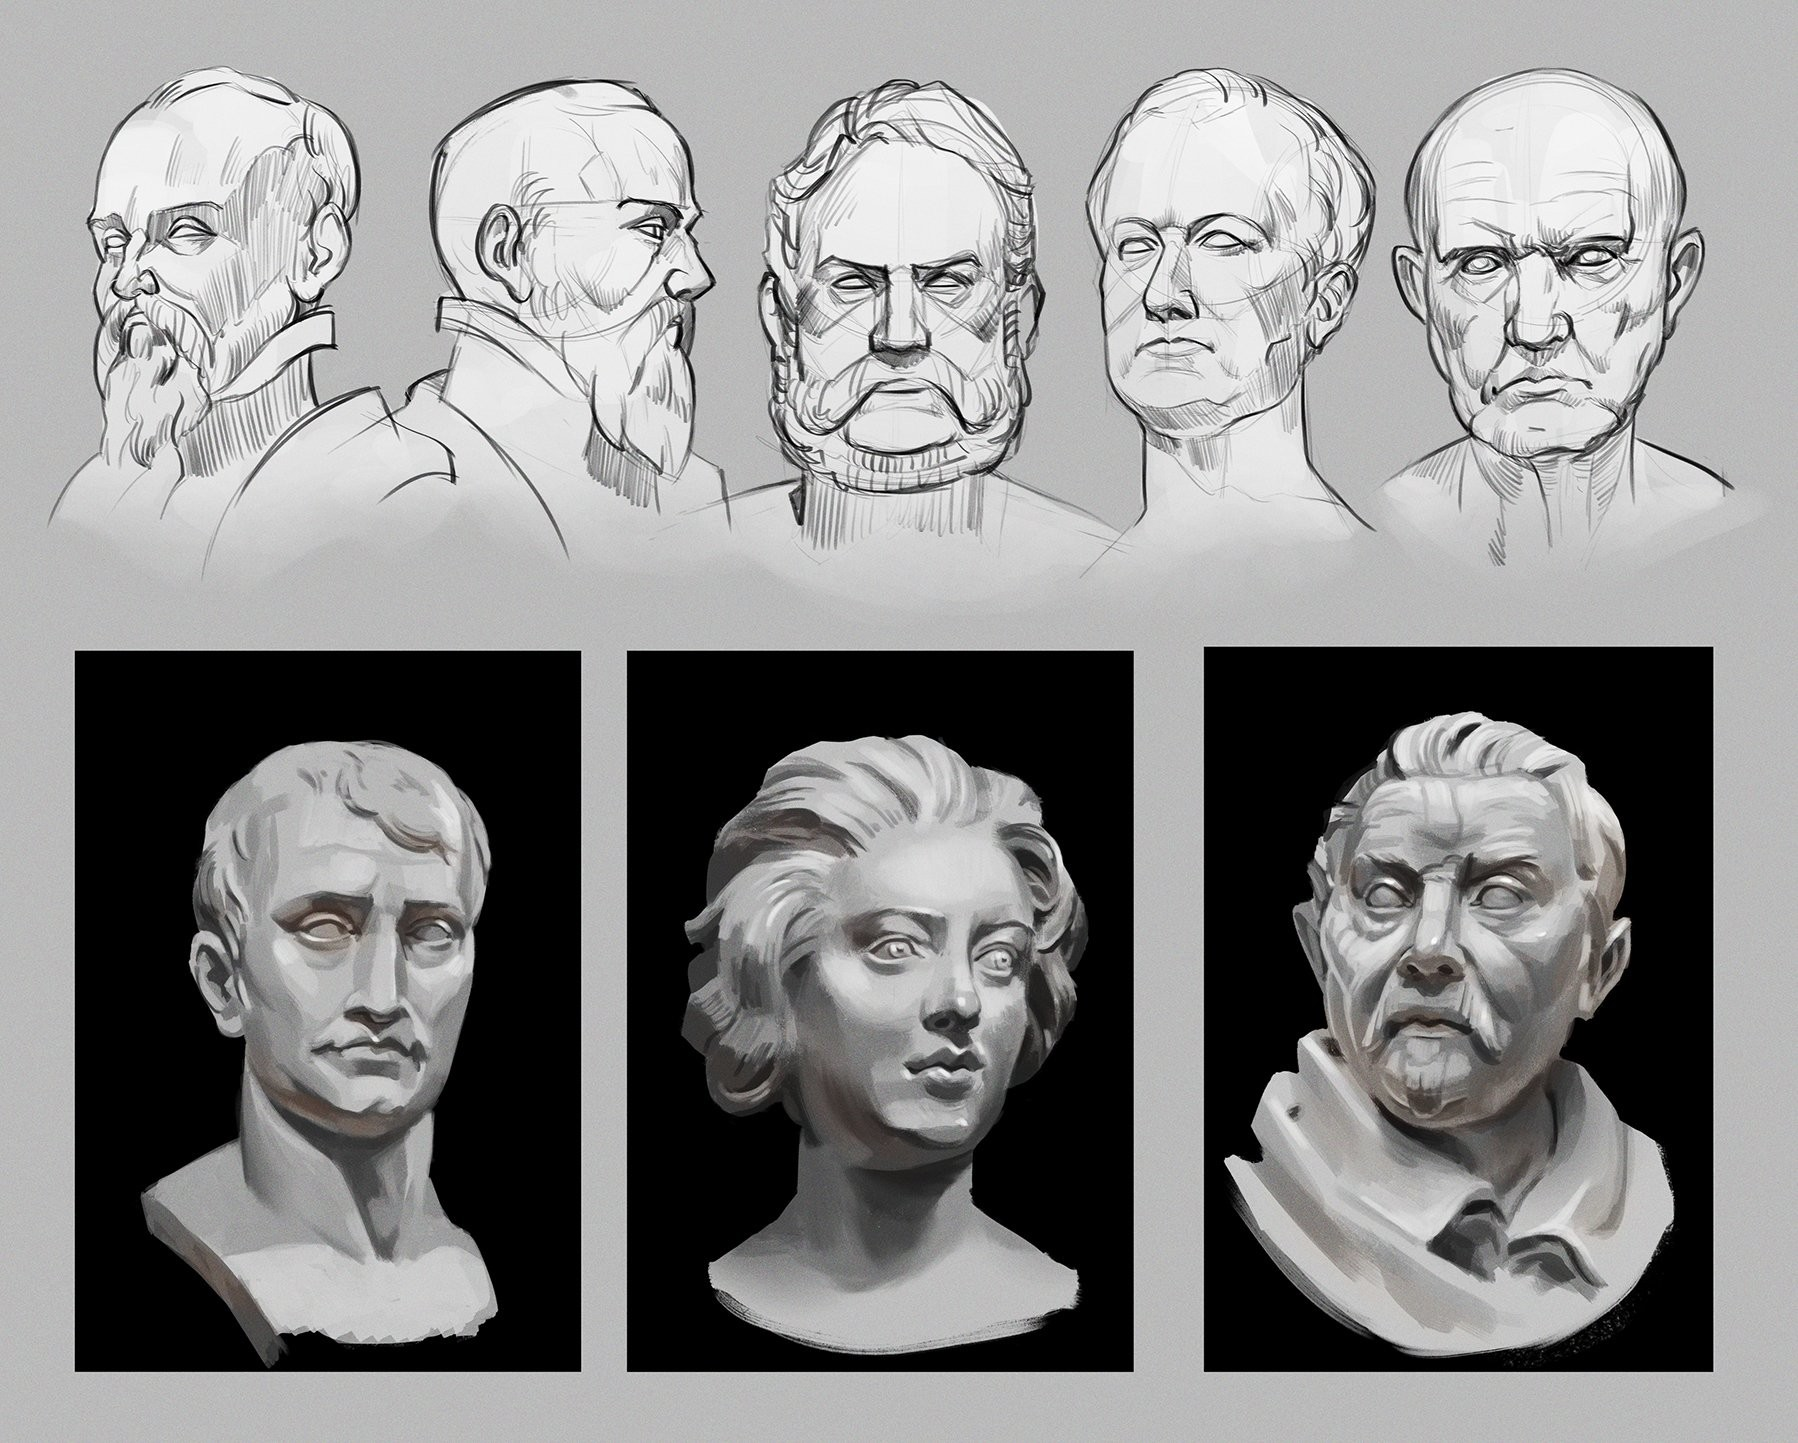 Sketching and painting busts. Actually removing all the colour information helped me focus on getting the planes looking right and making the shapes work together well.